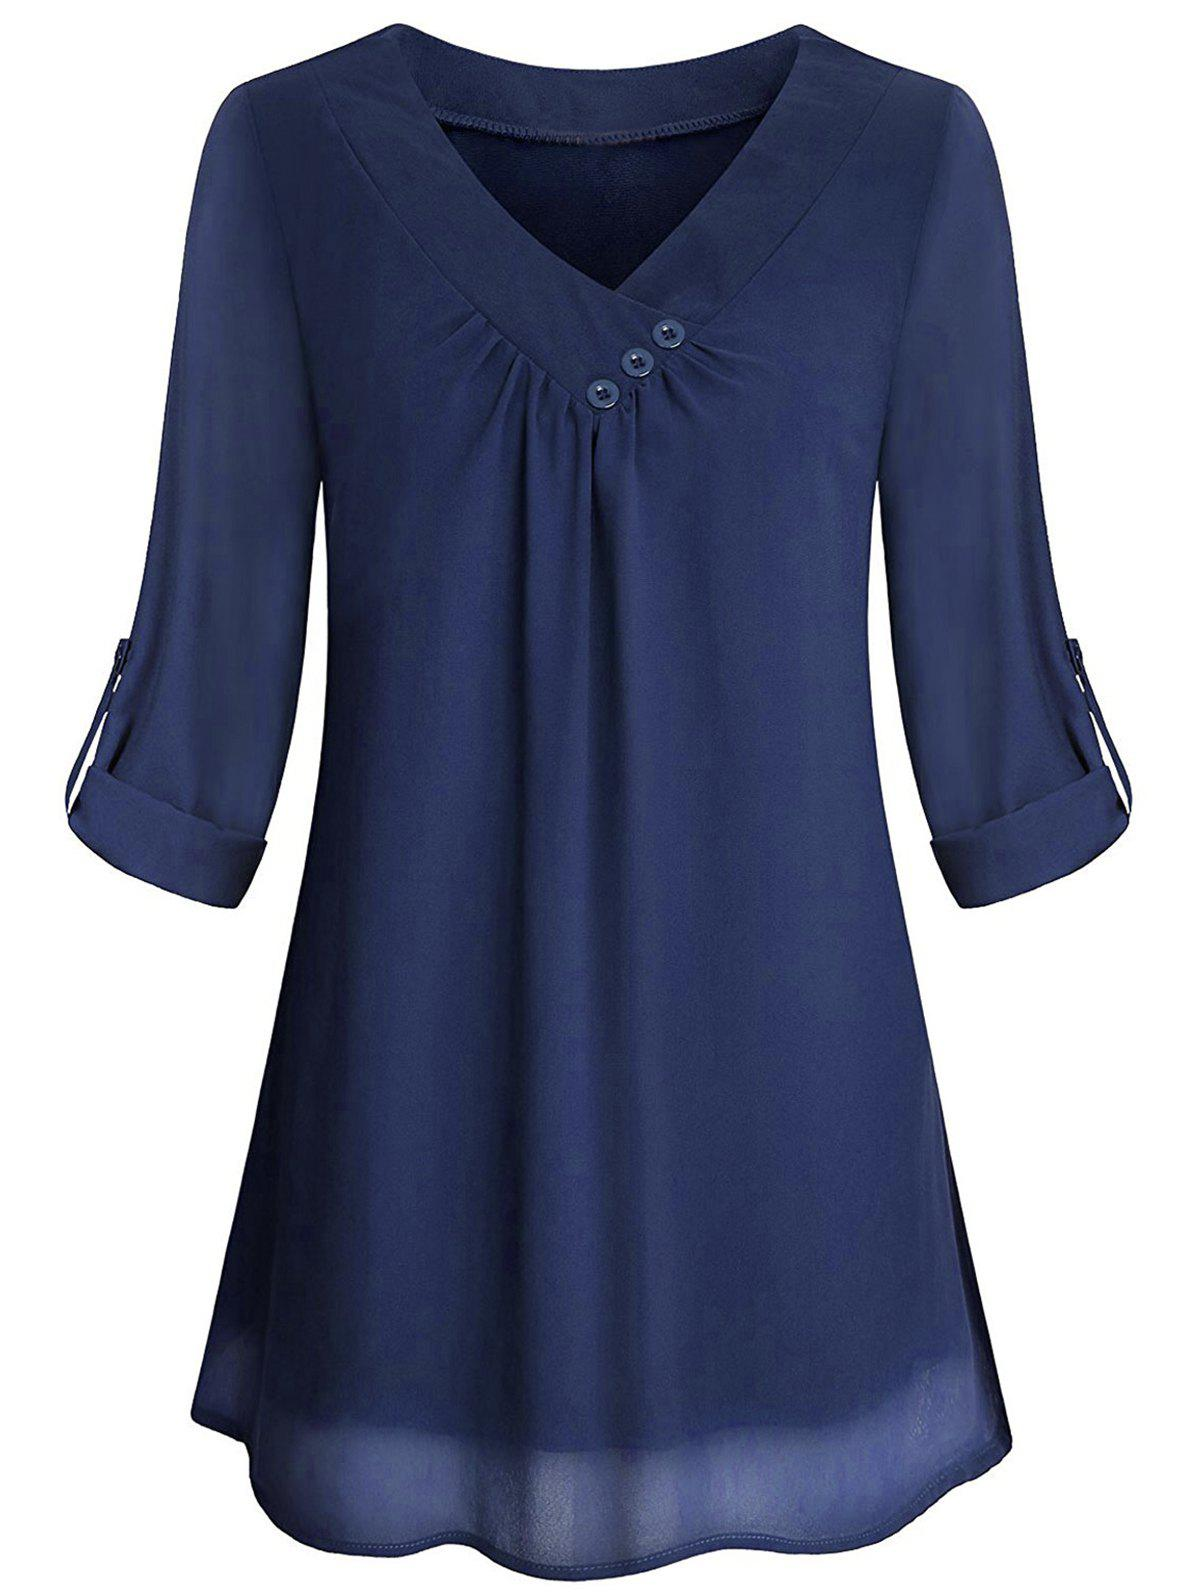 Cuffed Sleeves Buttons Solid Blouse - COBALT BLUE XL